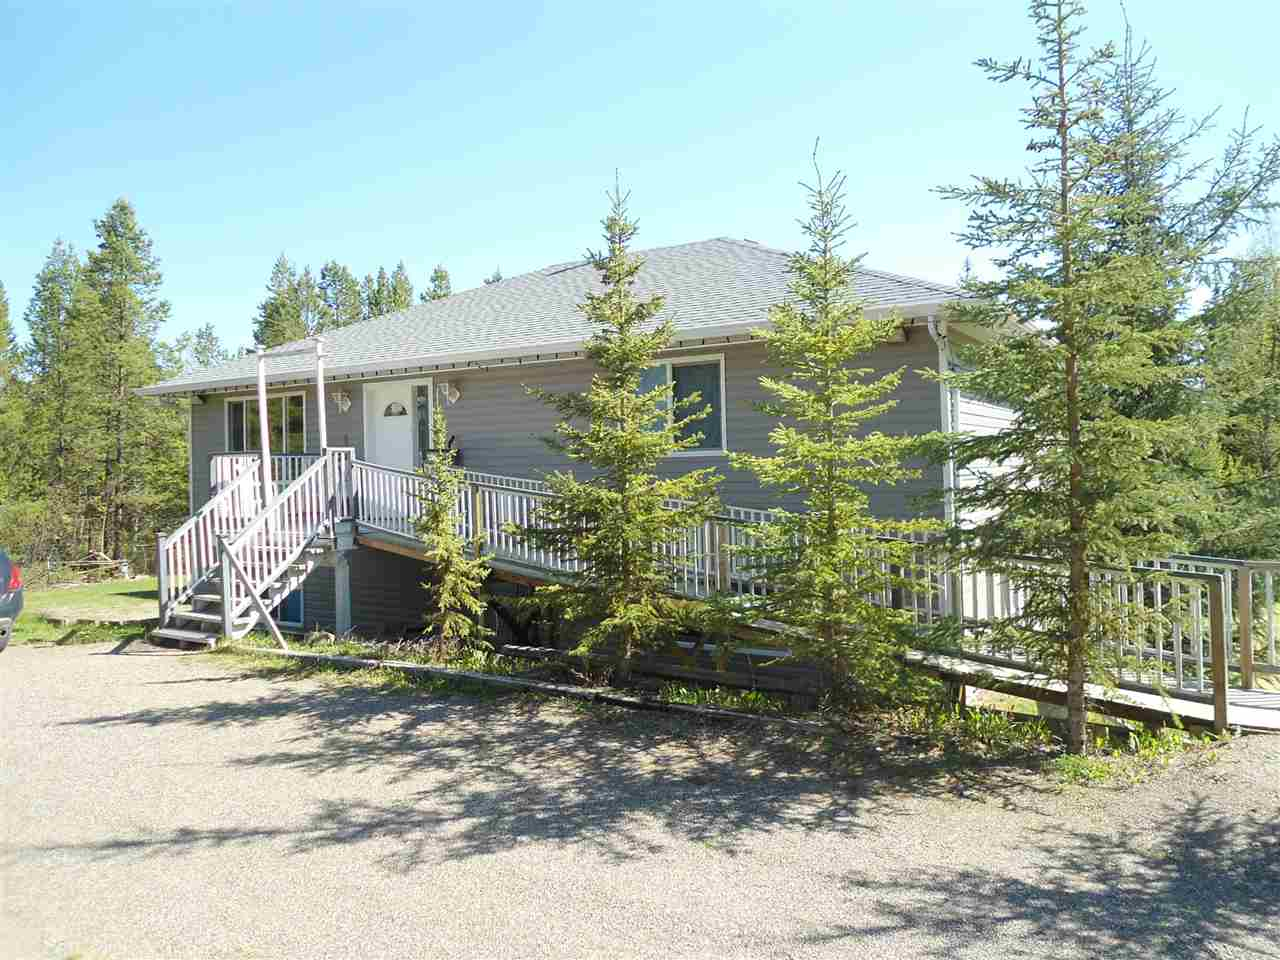 Photo 1: 12935 WOODLAND Road in Prince George: Beaverley House for sale (PG Rural West (Zone 77))  : MLS(r) # R2064820